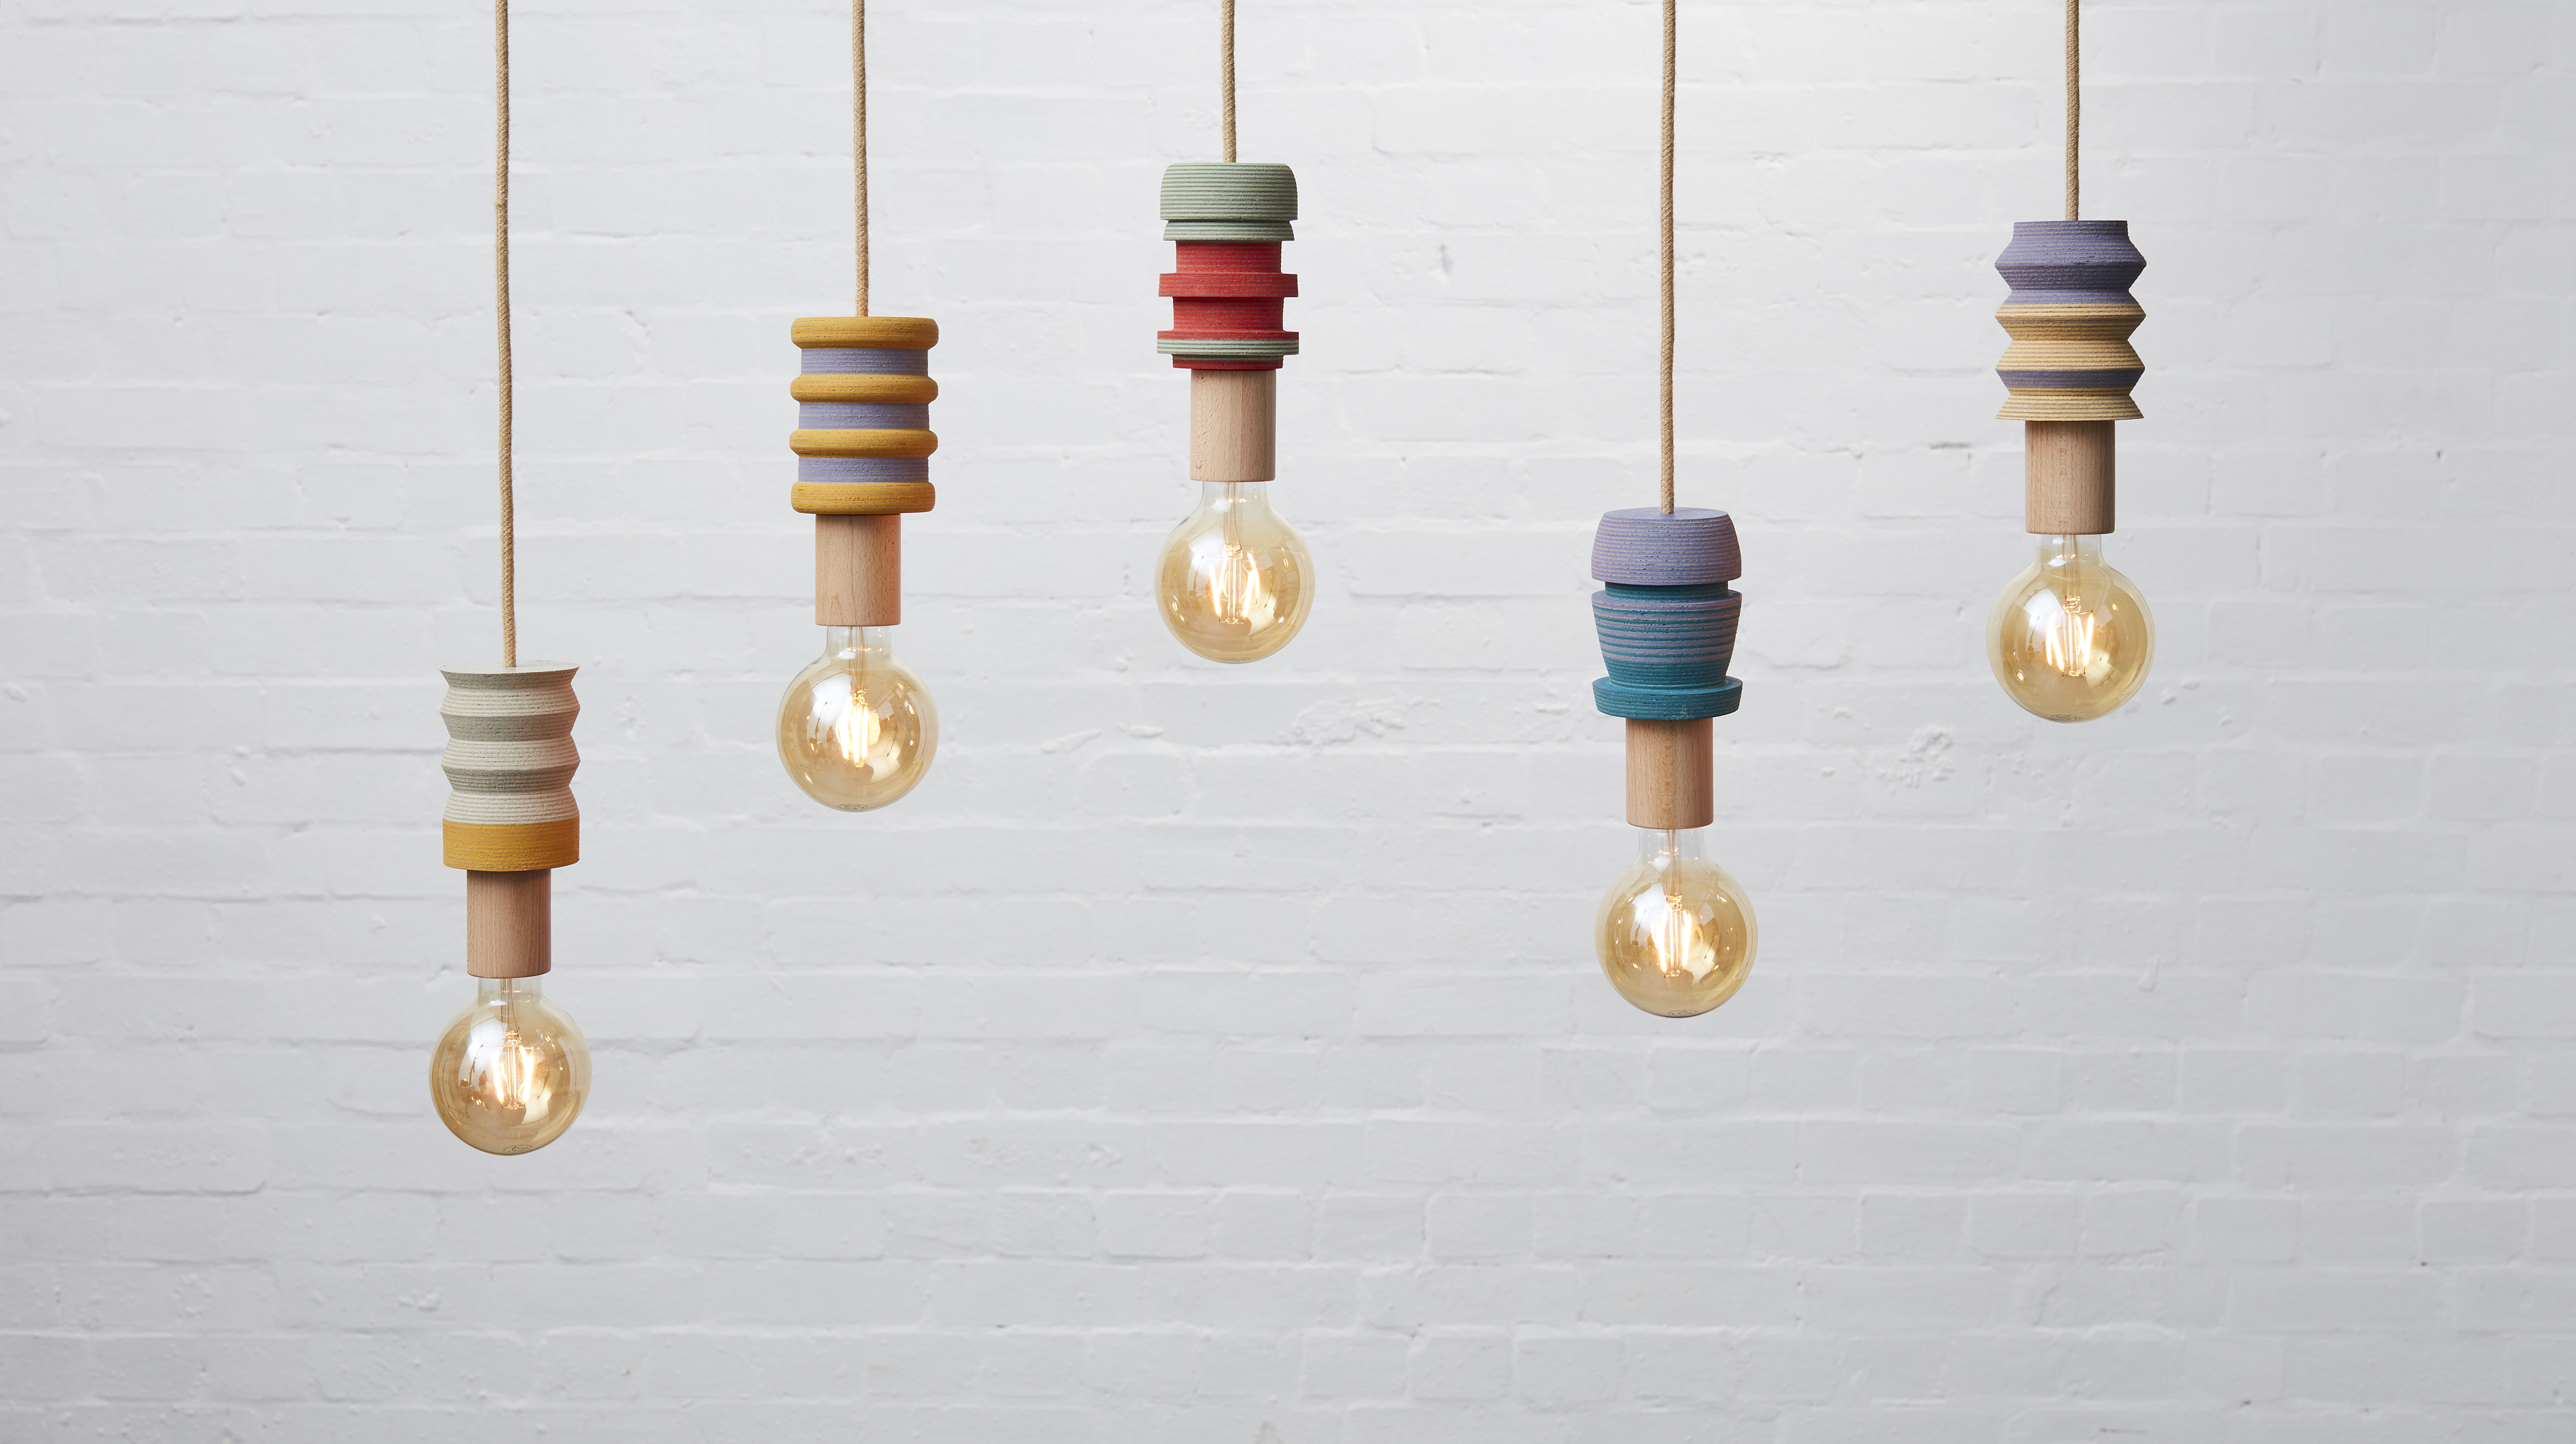 Lin pendant 4 - <p>The LIN pendant lights have been turned by hand on a lathe from blocks of laminated squares of Linoleum flooring. These playful and subtly vibrant pendants have been finished with a natural jute covered lighting cord, a solid wood E27 fitting bulb holder and a standard 3 pin plug. Statement yet welcoming lighting to brighten up interior or commercial spaces.</p>  | Matter of Stuff